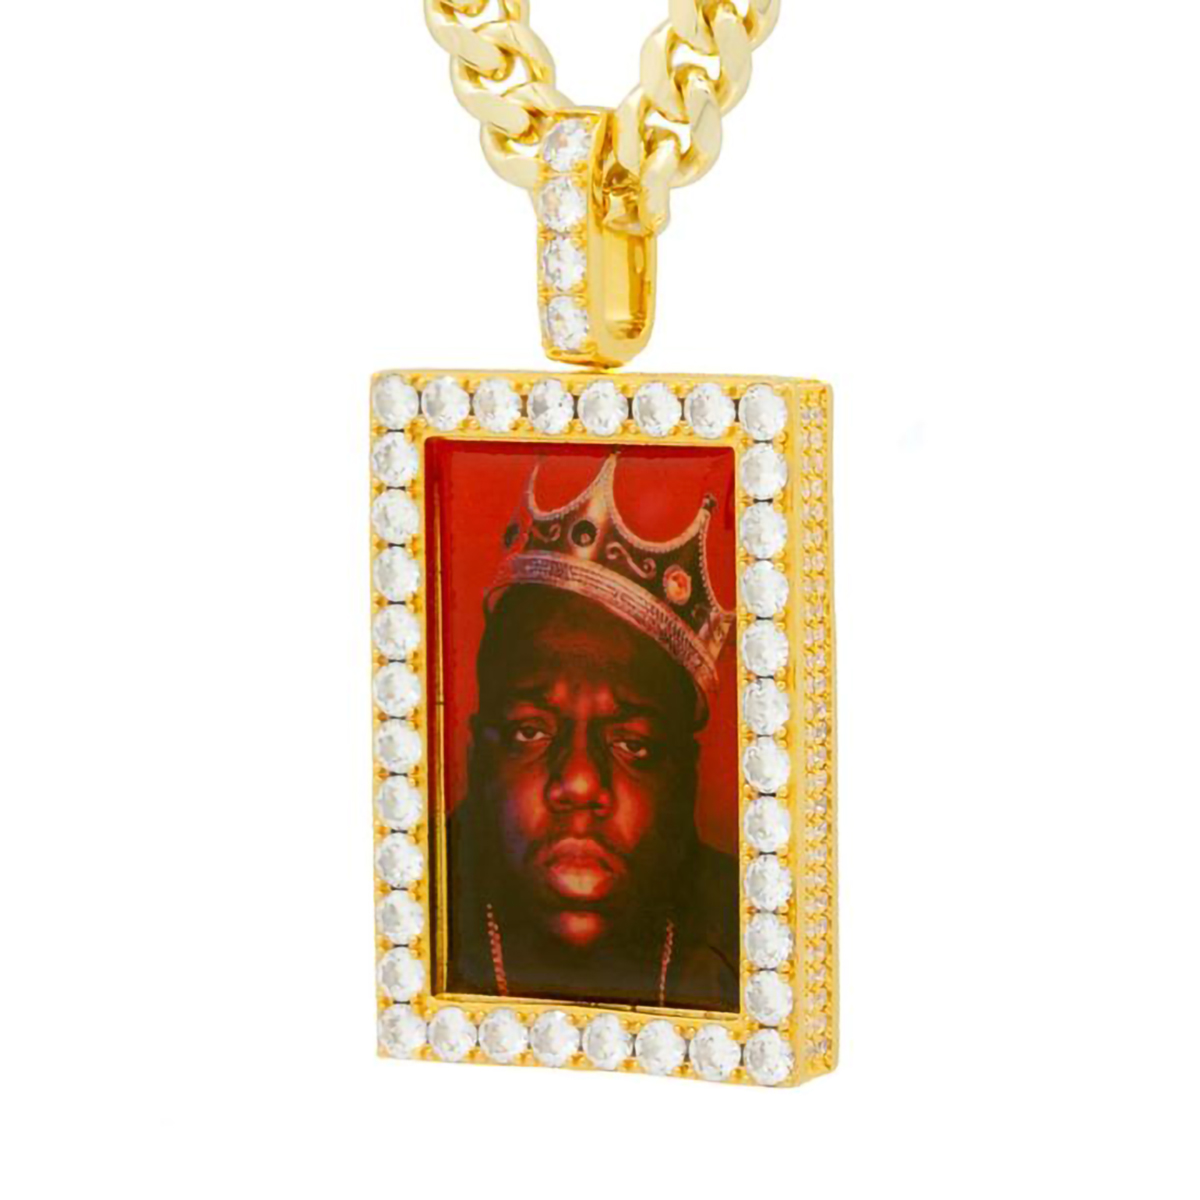 Notorious B.I.G. x King Ice - King of New York Necklace